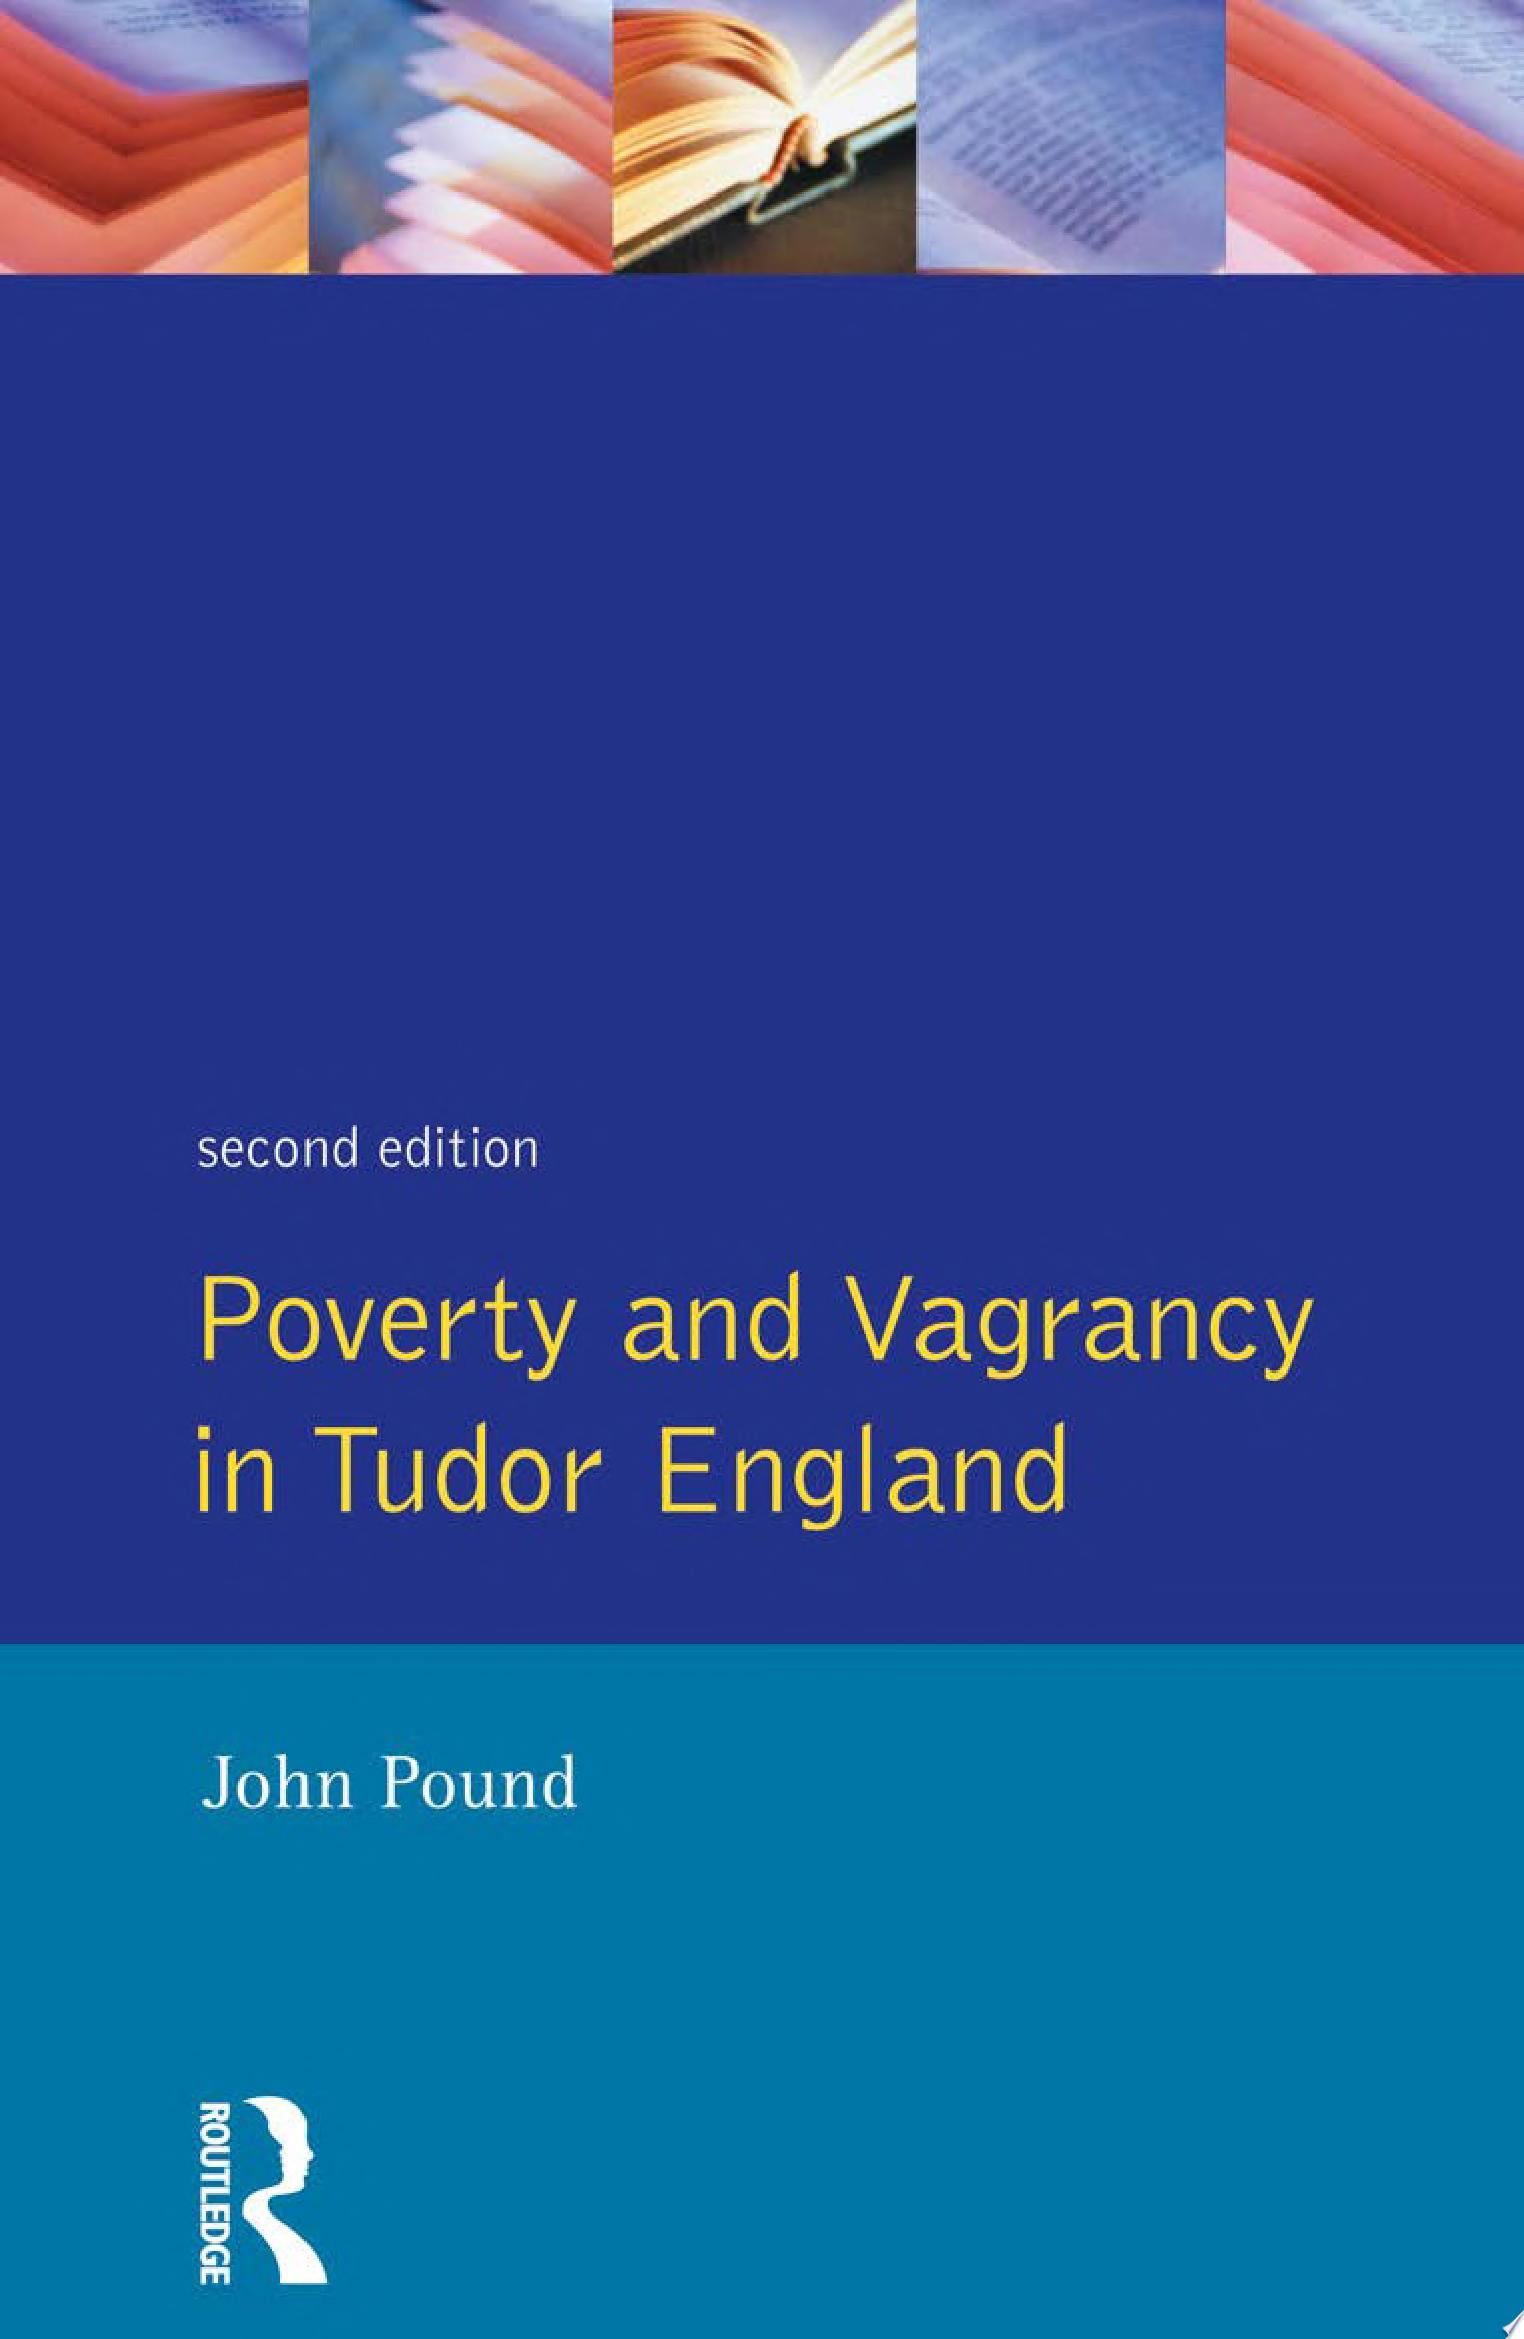 Poverty and Vagrancy in Tudor England